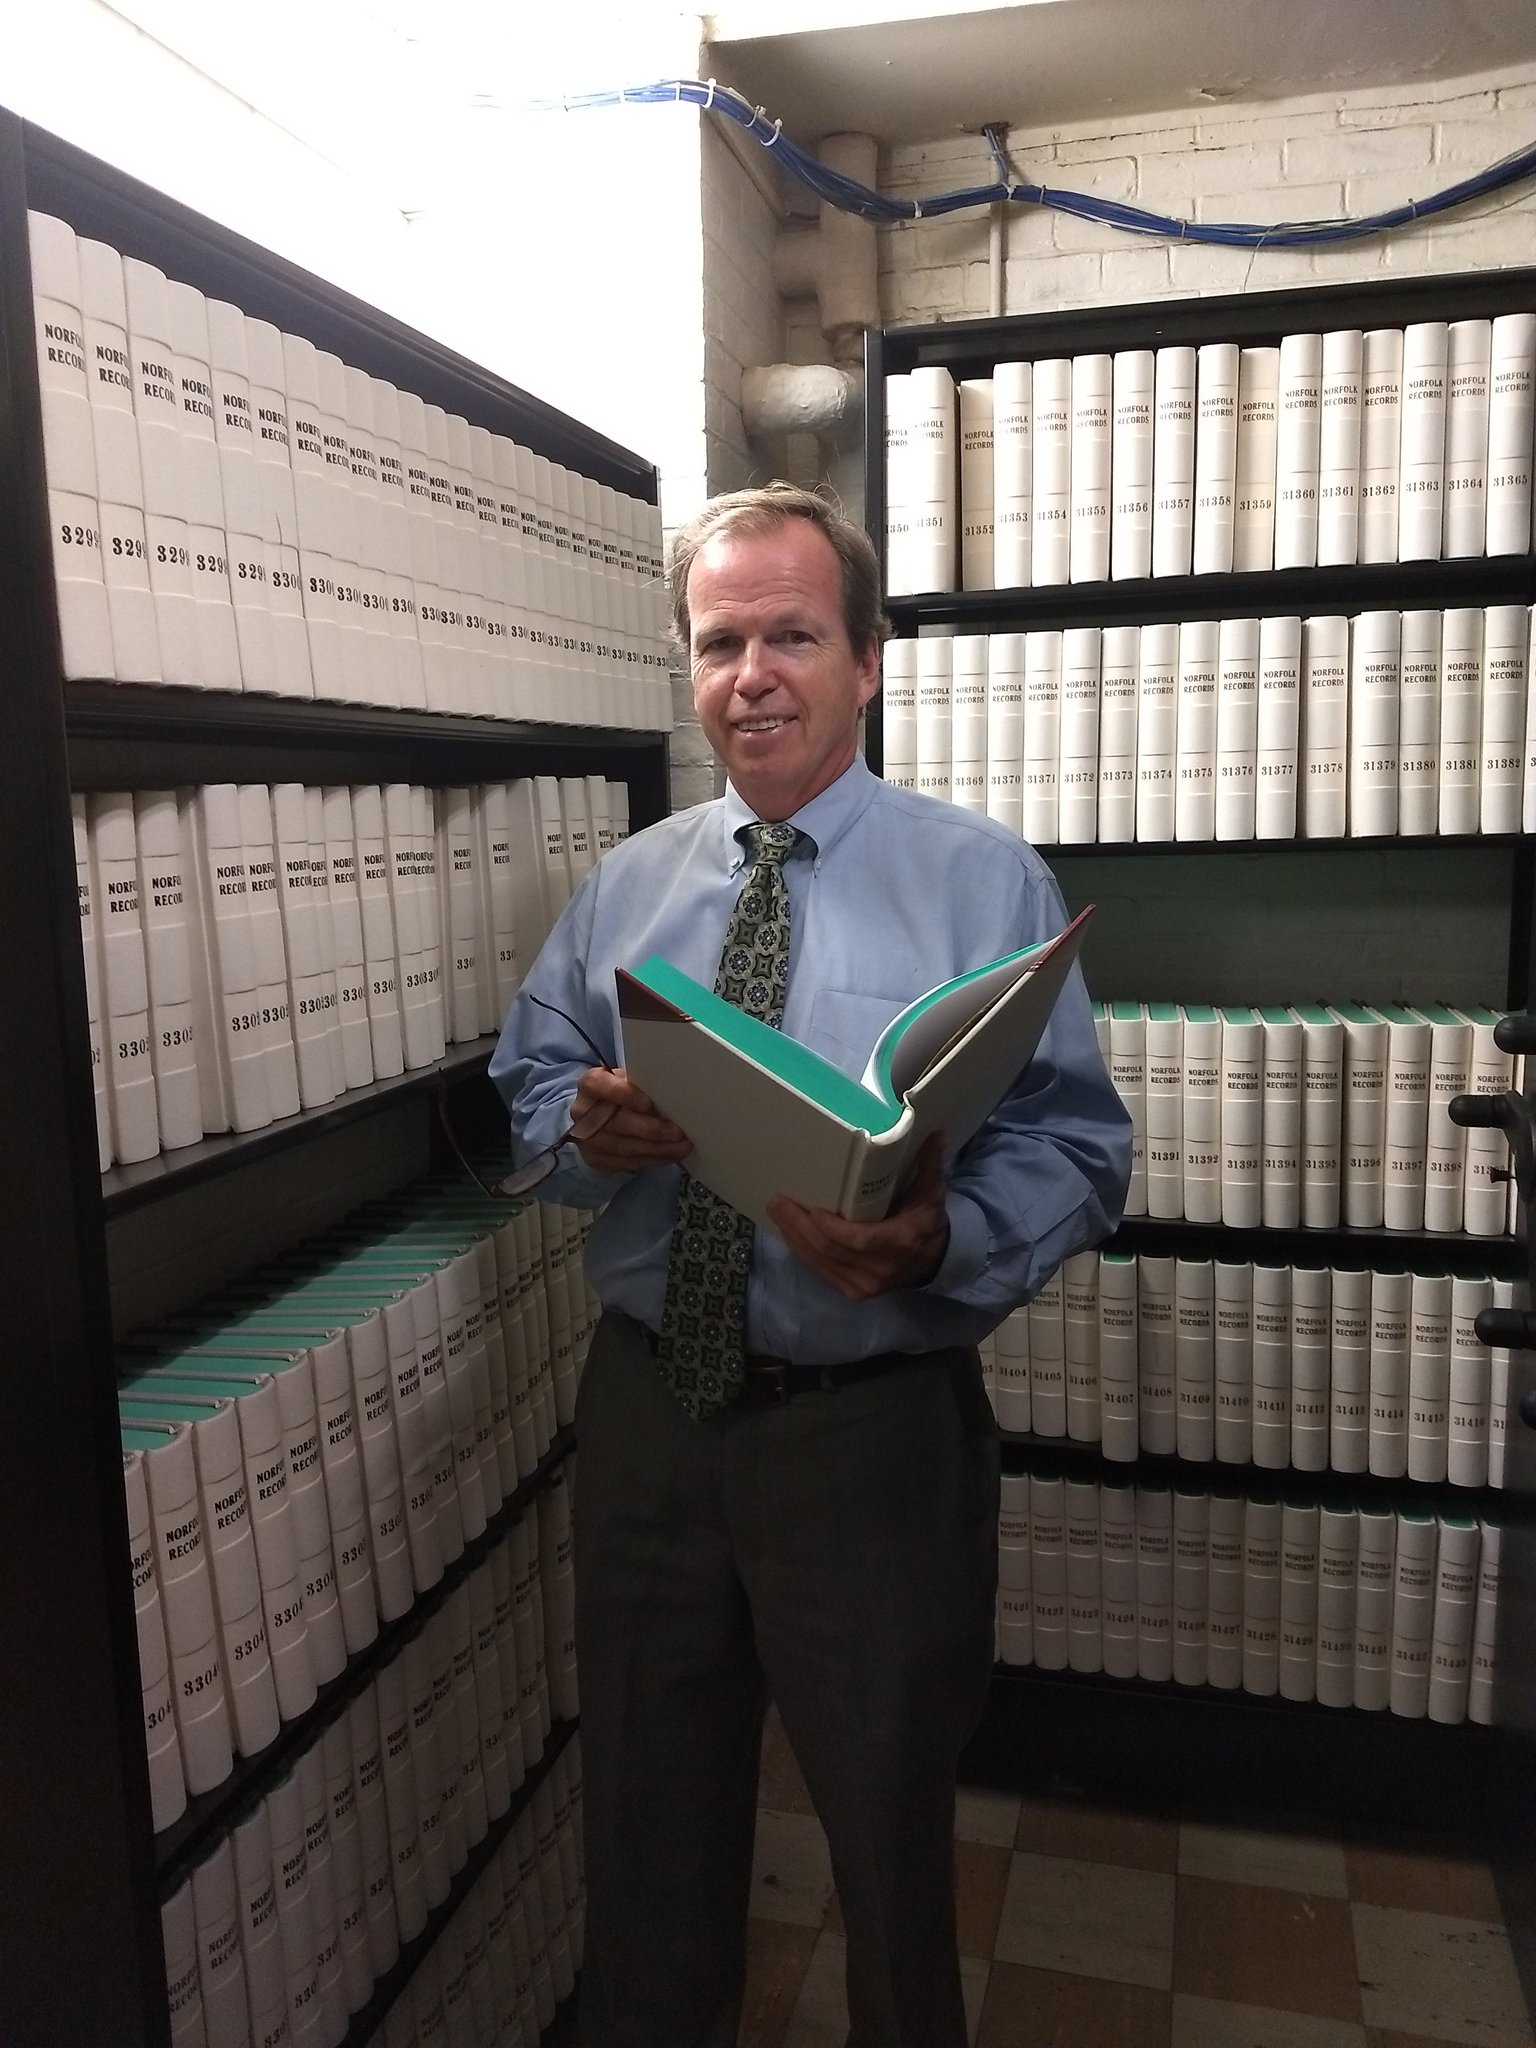 Register O'Donnell Announces 36,000th Book Printed at Registry